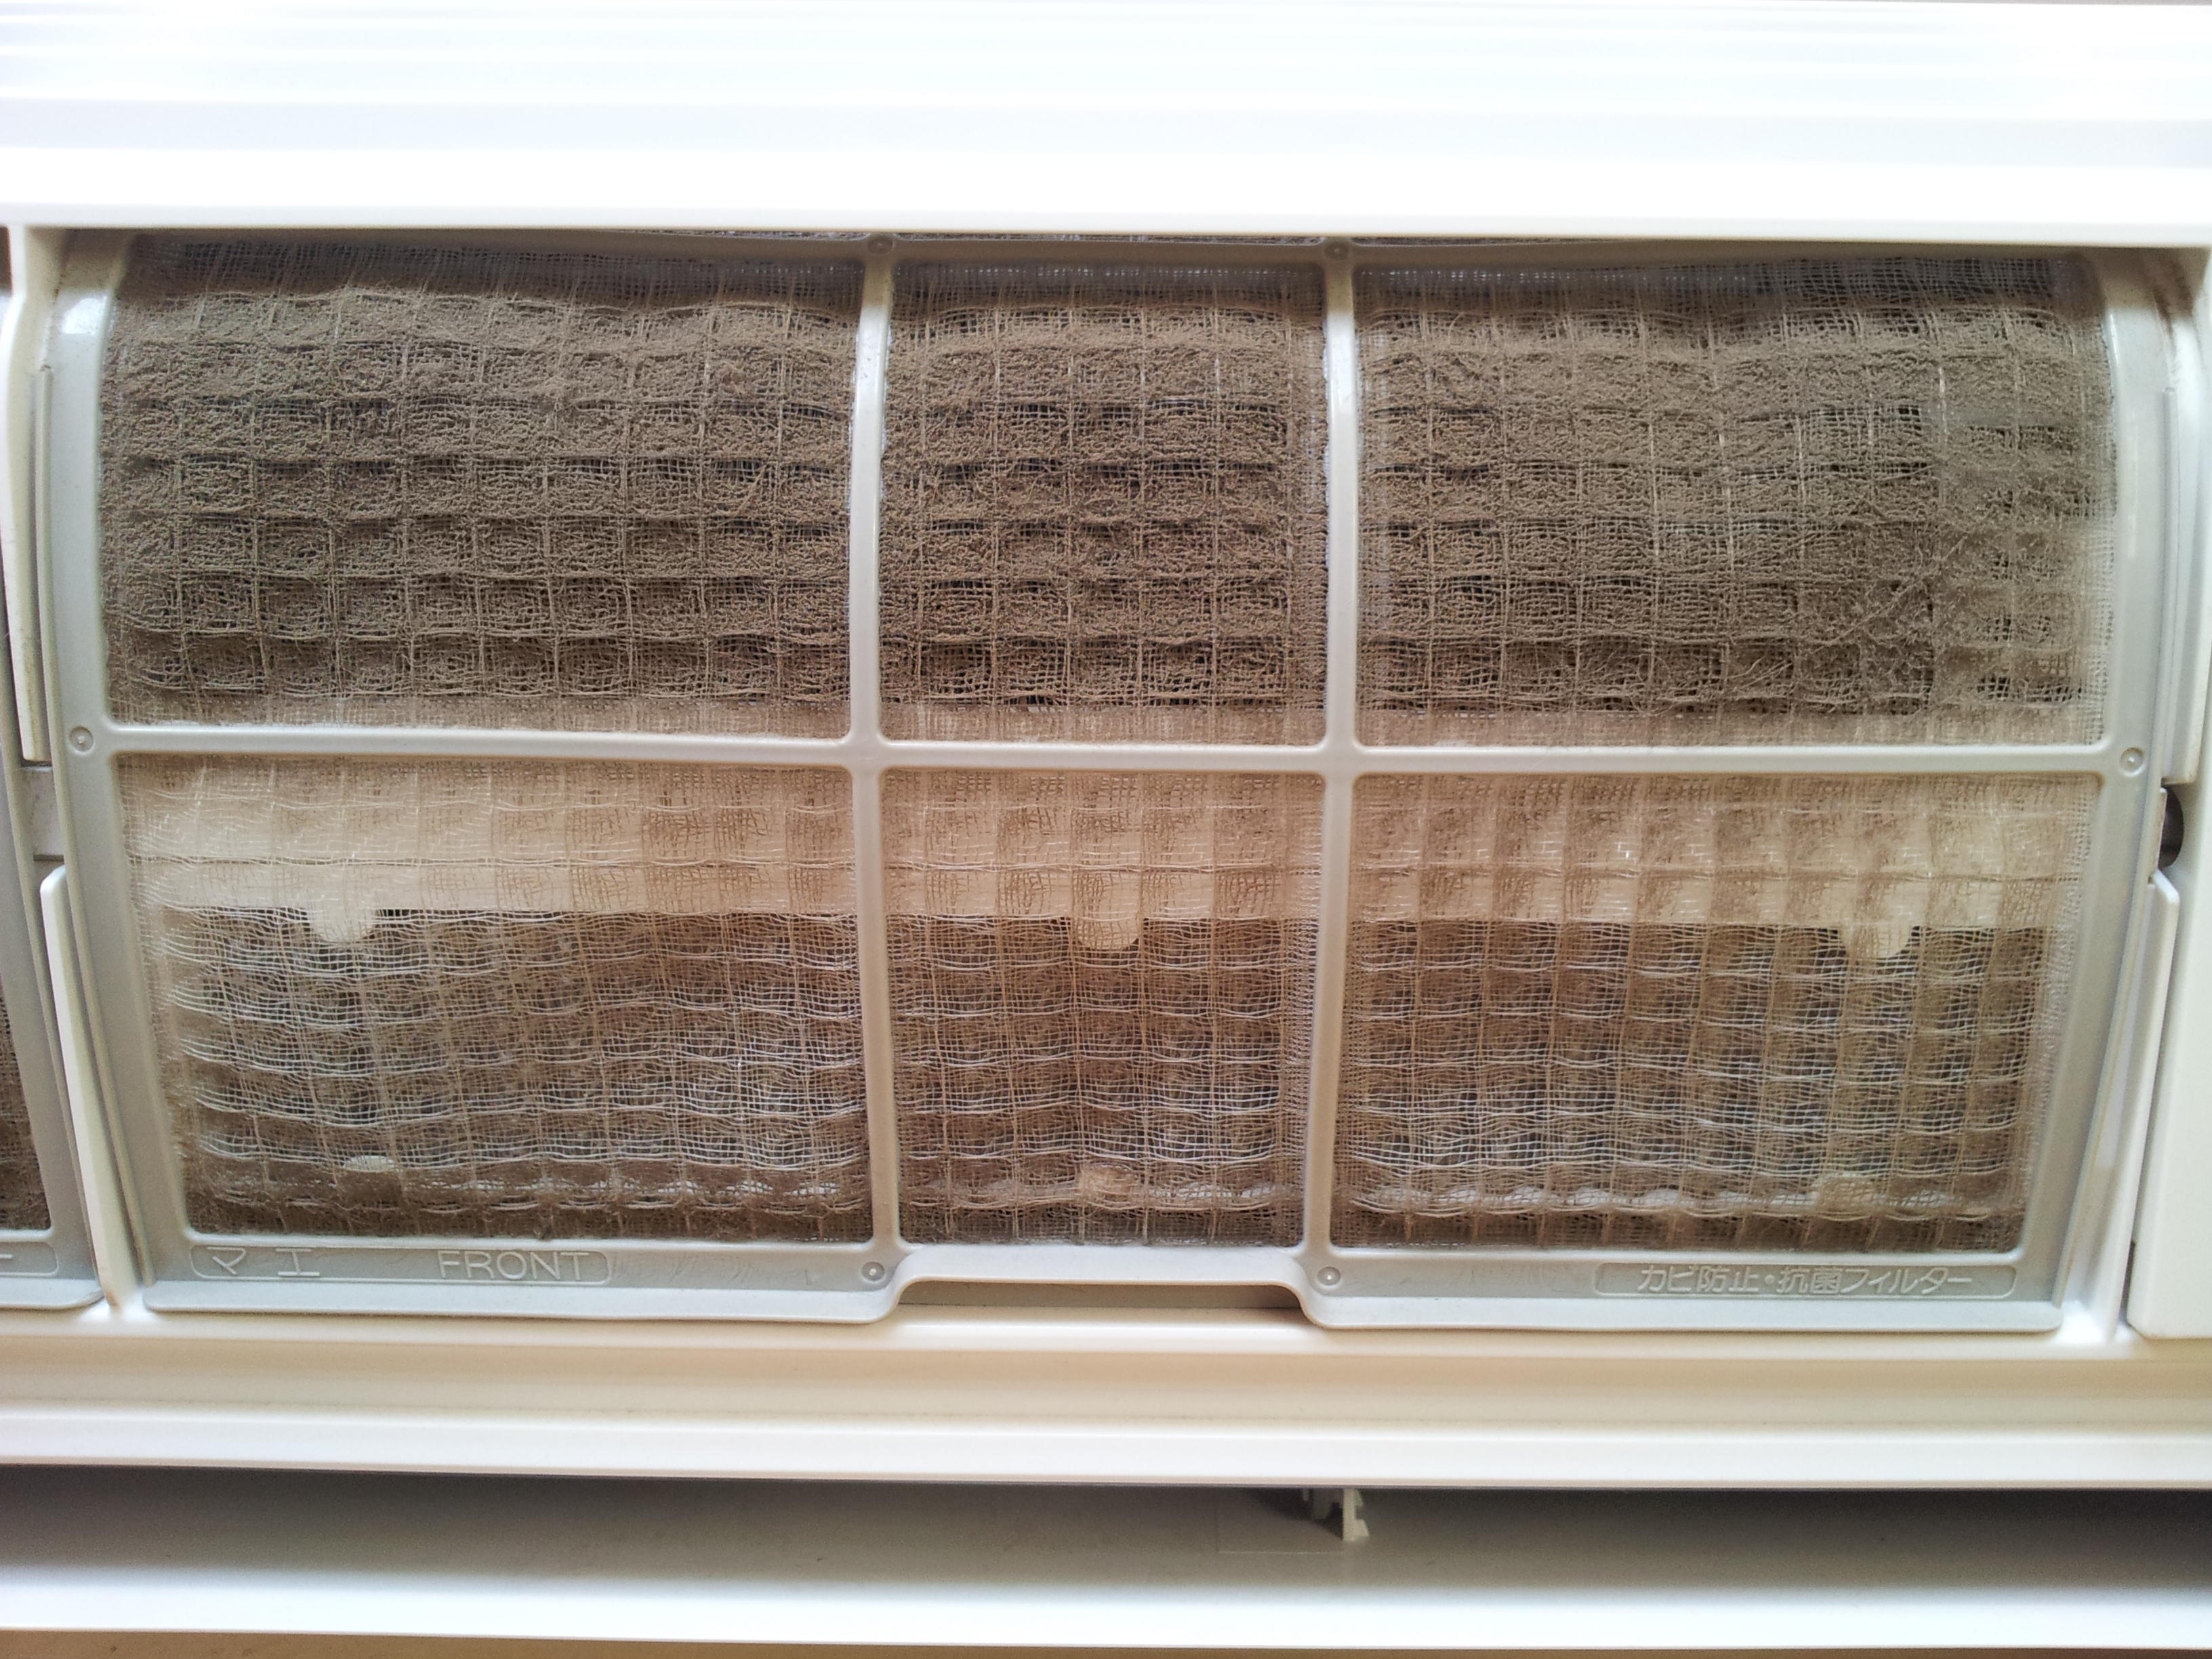 how to clean the filter of split ac fujitsu